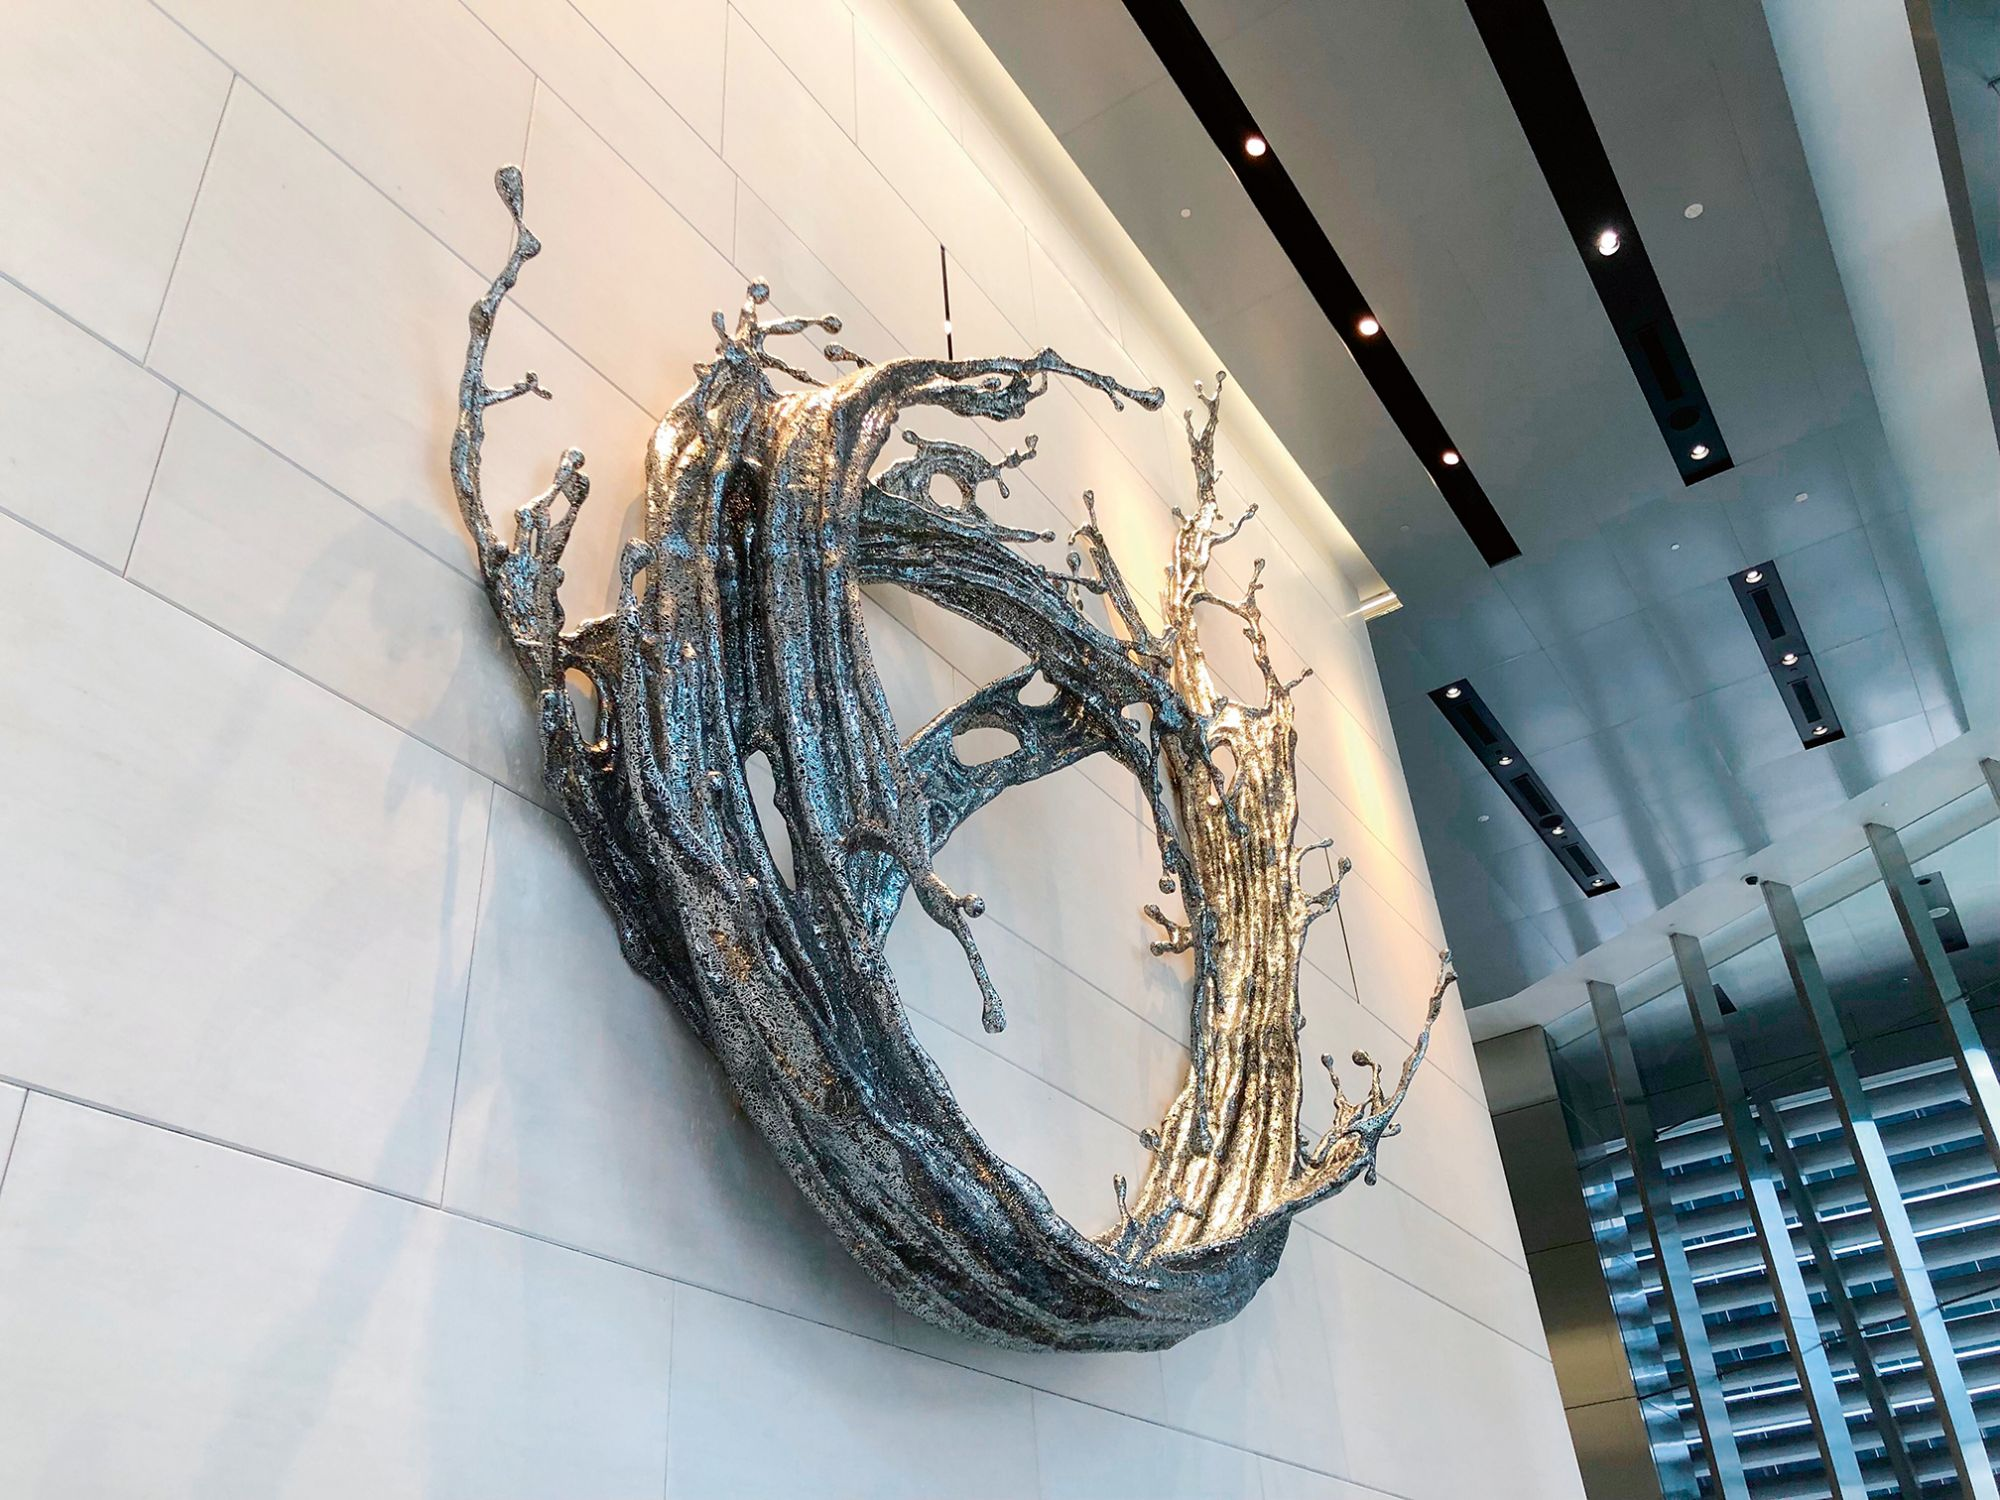 As part of The Artling's advisory services, the online gallery selected this sculpture by Chinese artist Zheng Lu for a client